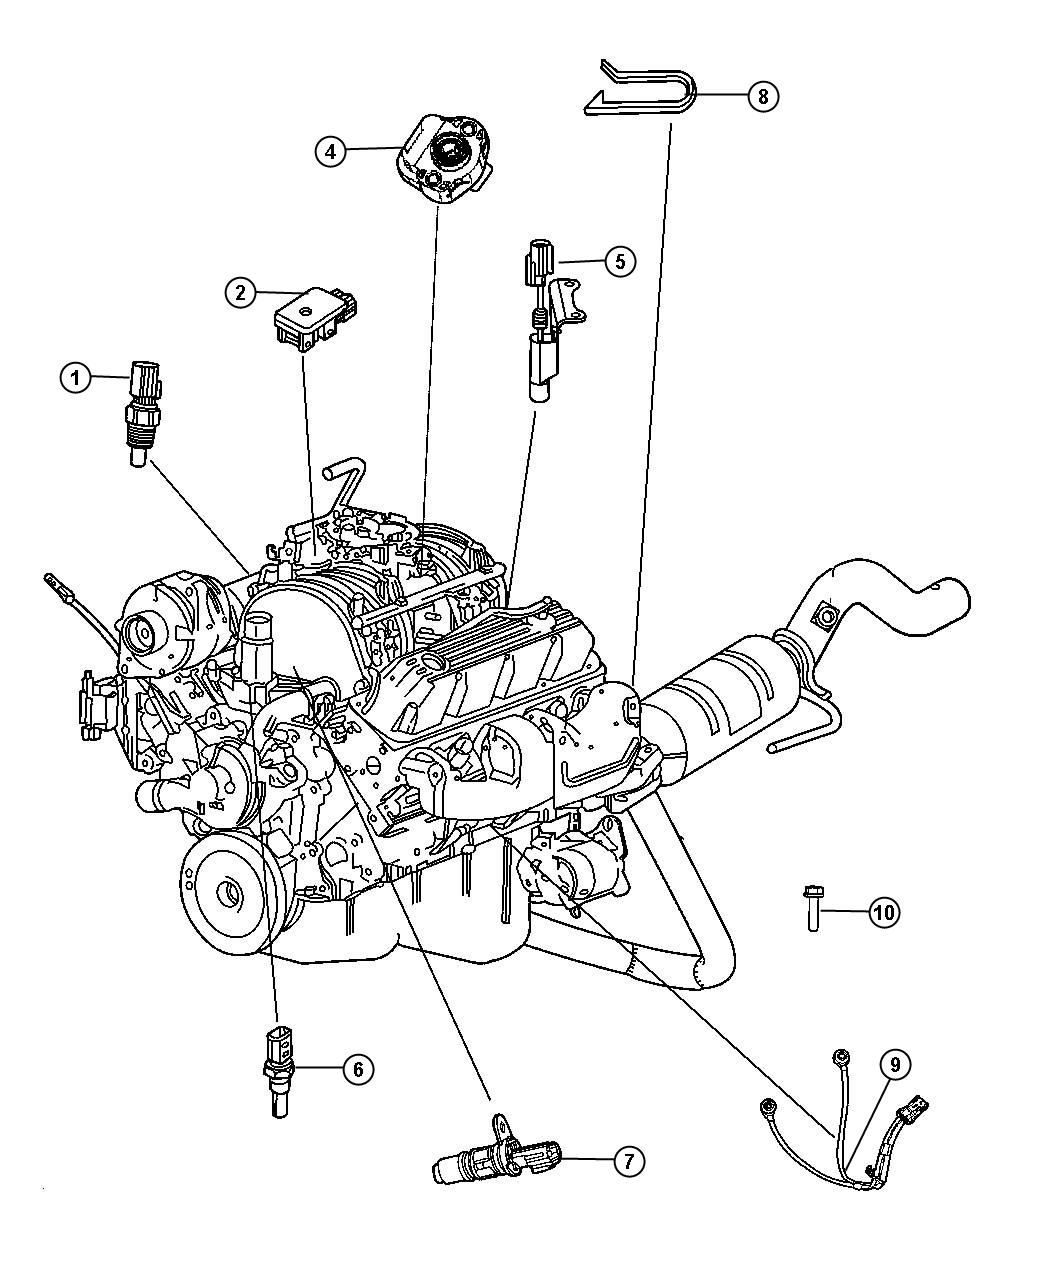 1997 Ford Ranger Fog Light Wiring Diagram For 2007 Relay Wiringford F 150 Backup Diagrams